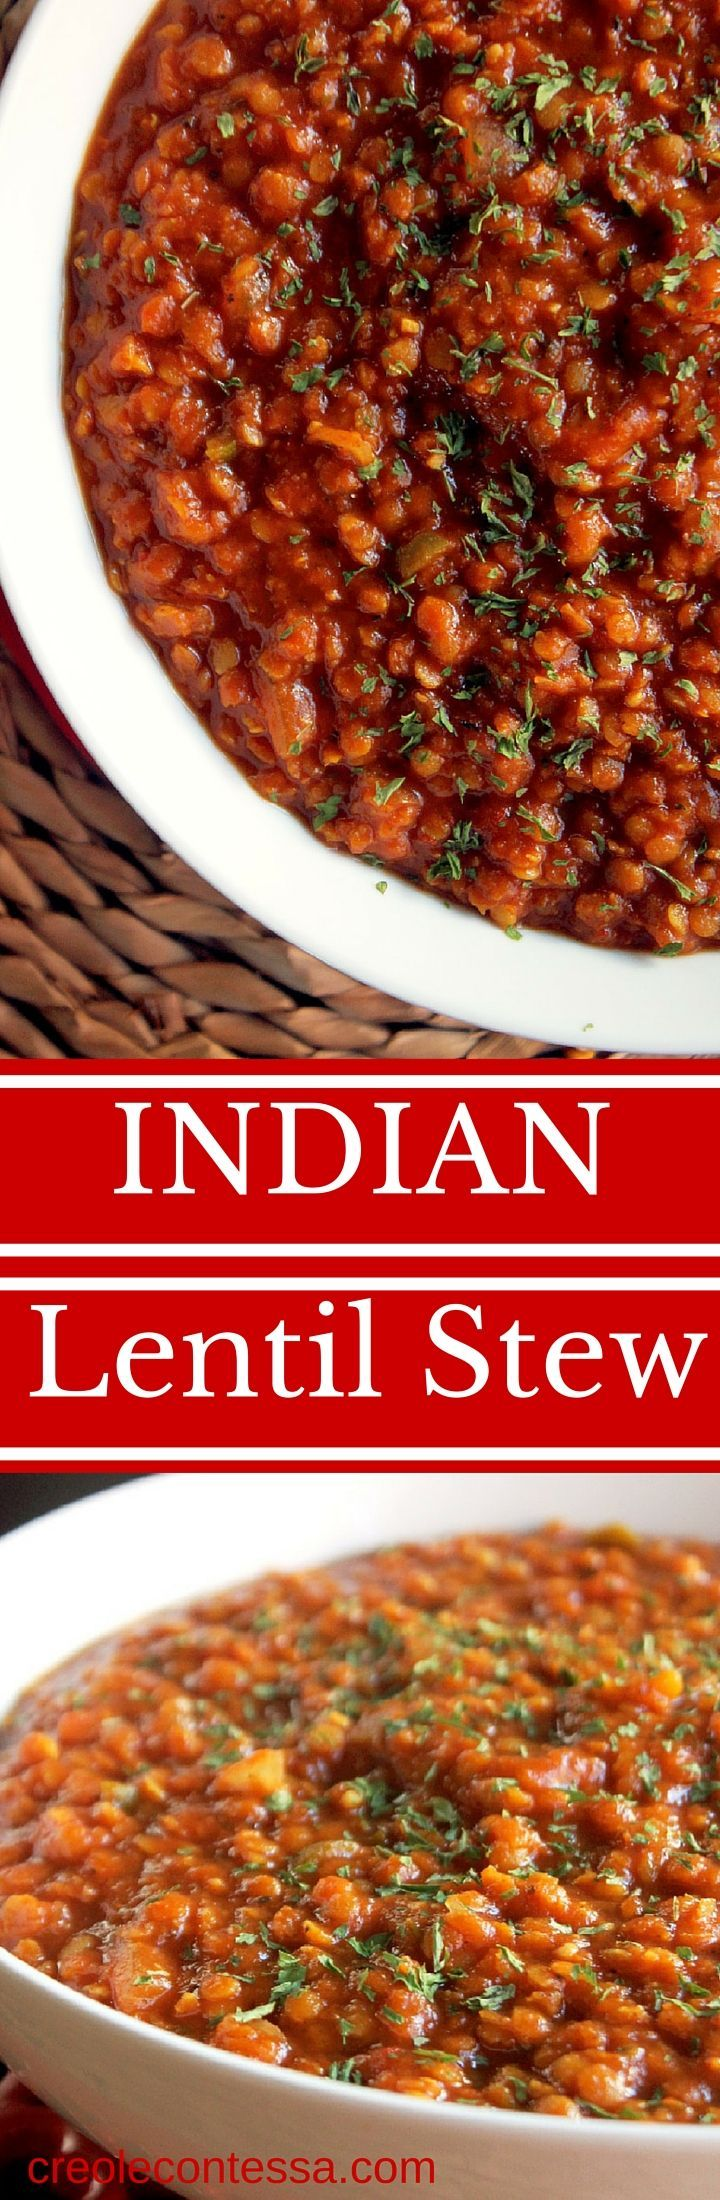 Slow Cooker Indian Lentil Stew-Creole Contessa  http://creolecontessa.com/2015/09/slow-cooker-indian-lentil-stew/  foodiedelicious.com